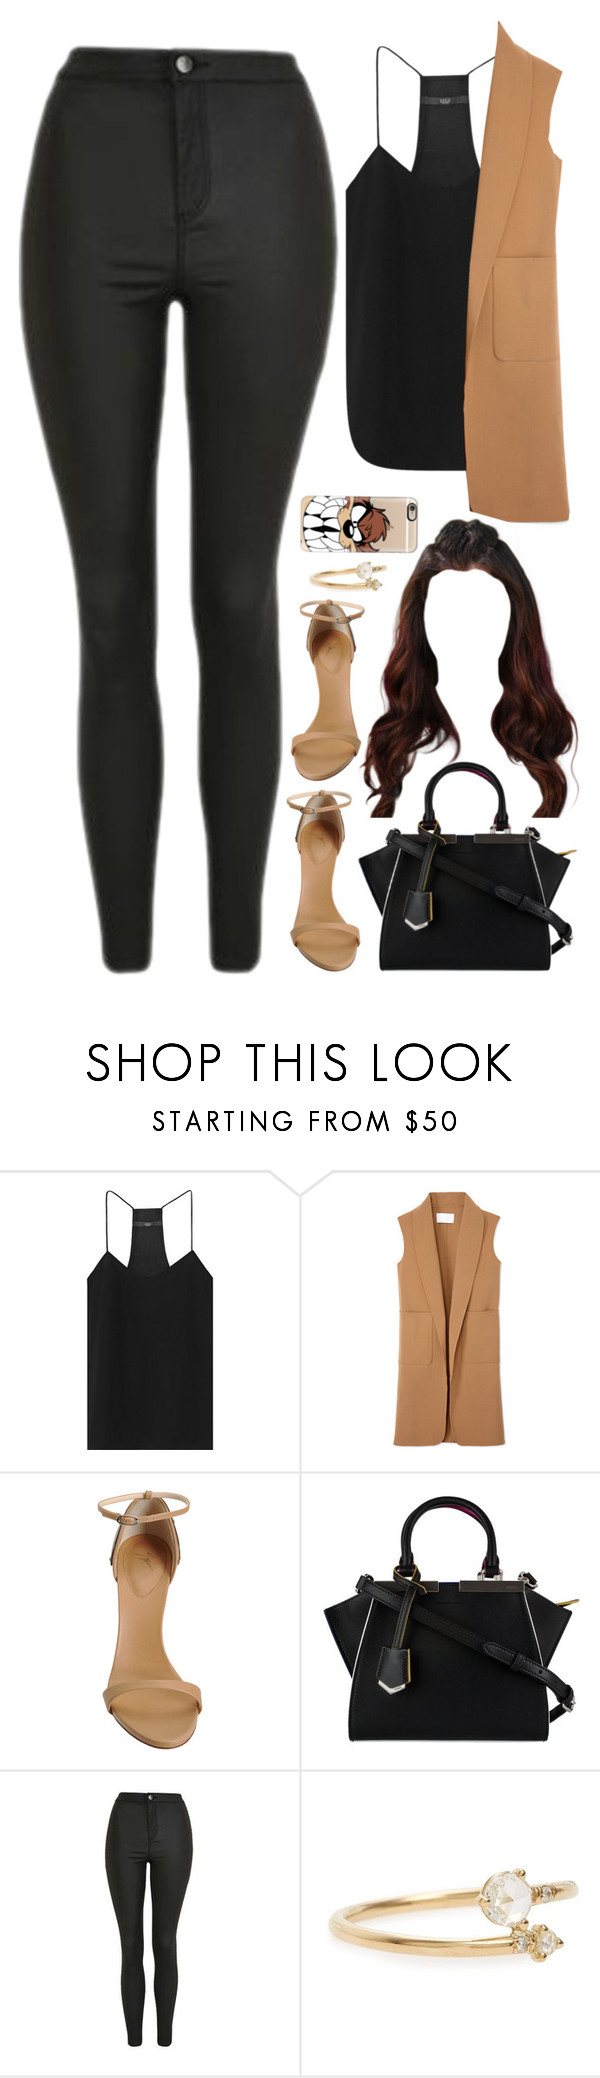 """26 November, 2016"" by jamilah-rochon ❤ liked on Polyvore featuring TIBI, Alexander Wang, Giuseppe Zanotti, Fendi, Topshop, WWAKE and Casetify"